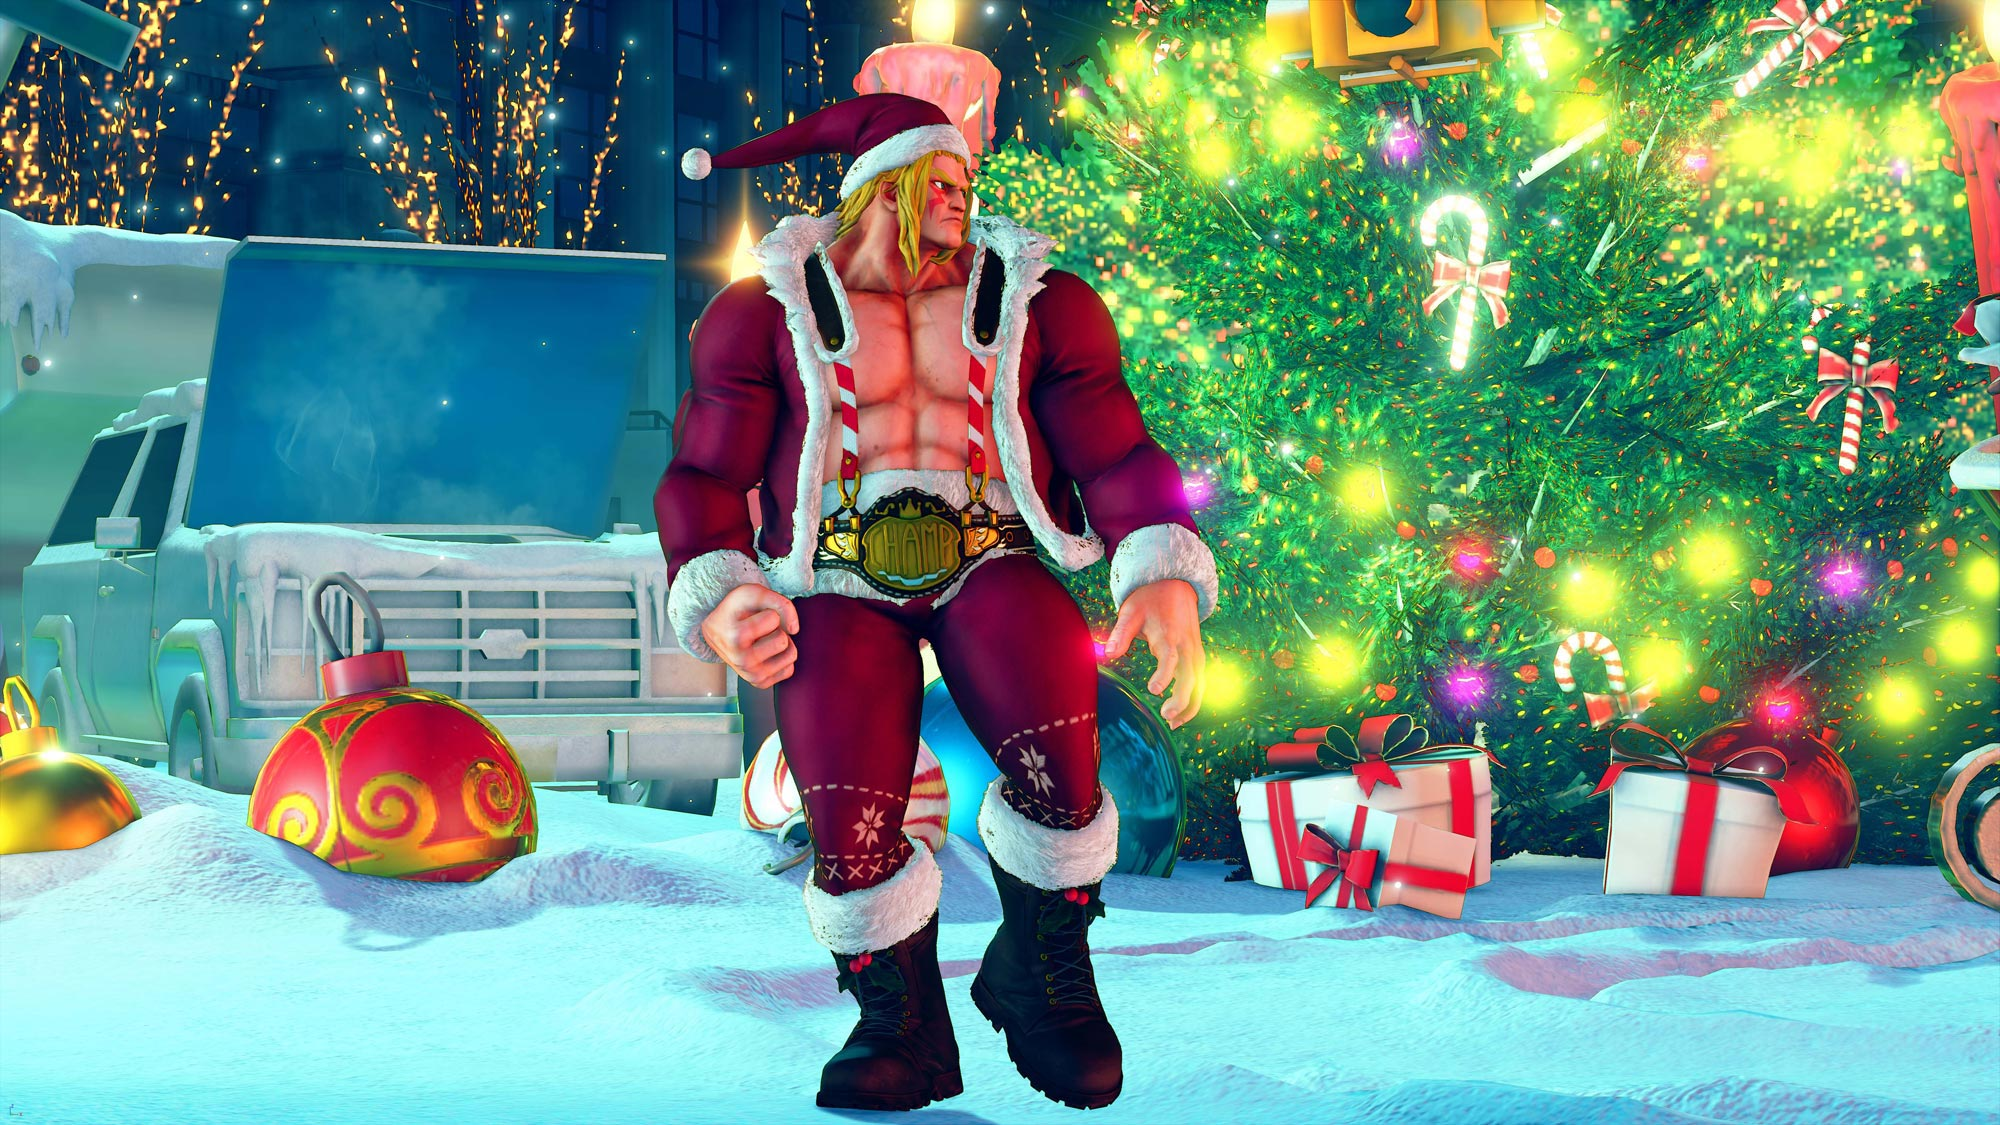 New Street Fighter 5 costumes 1 out of 10 image gallery